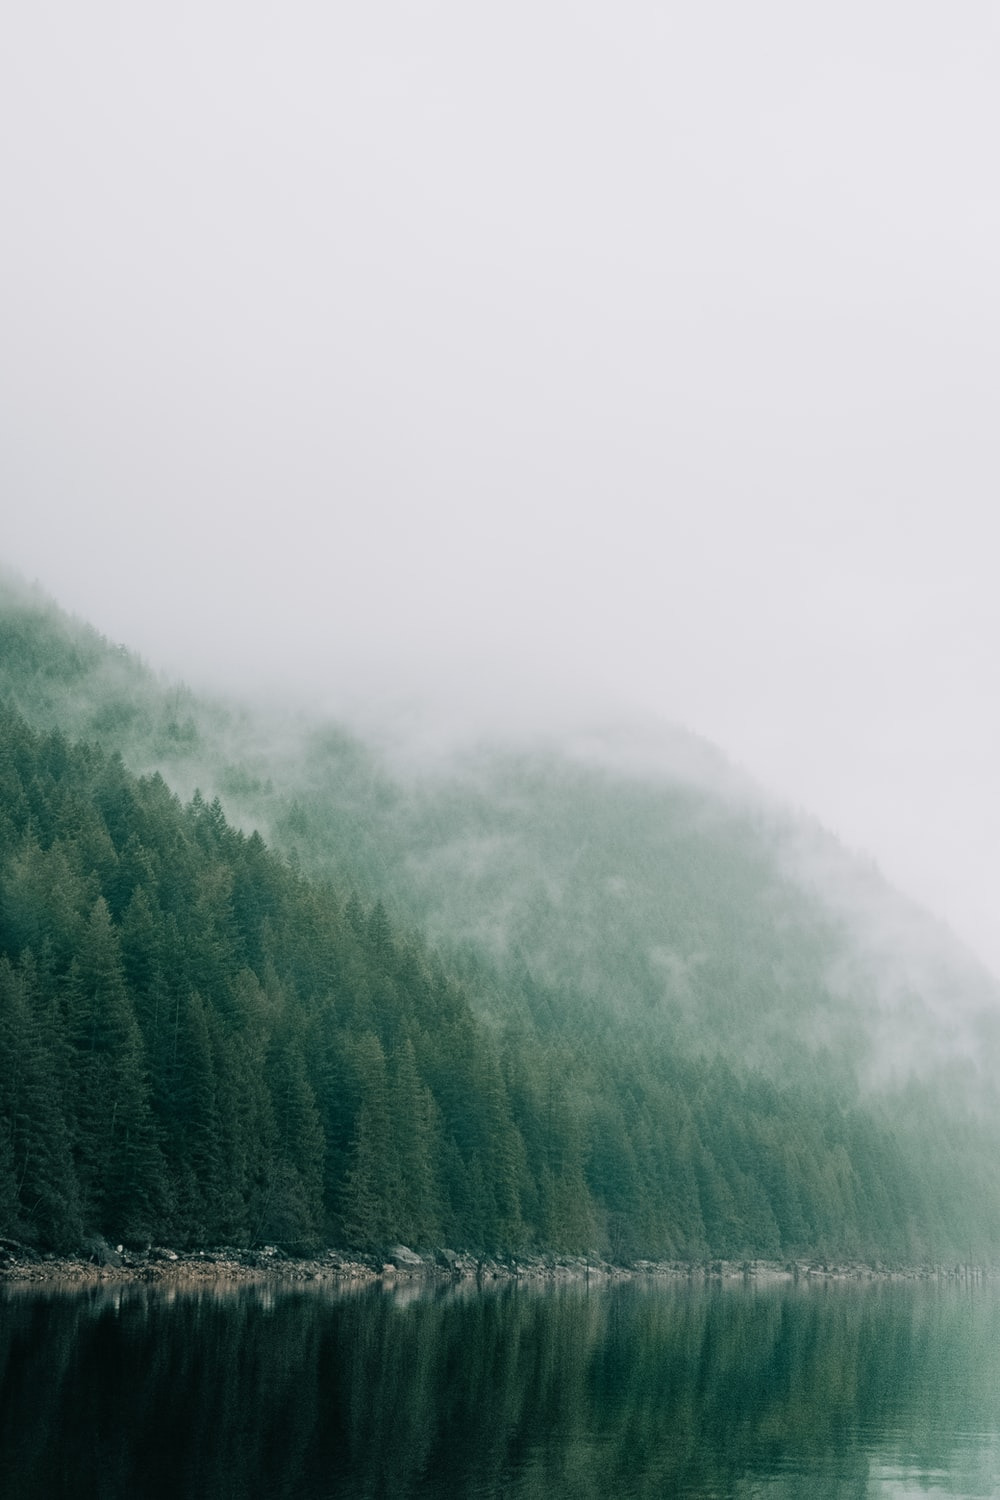 green trees covered by fog